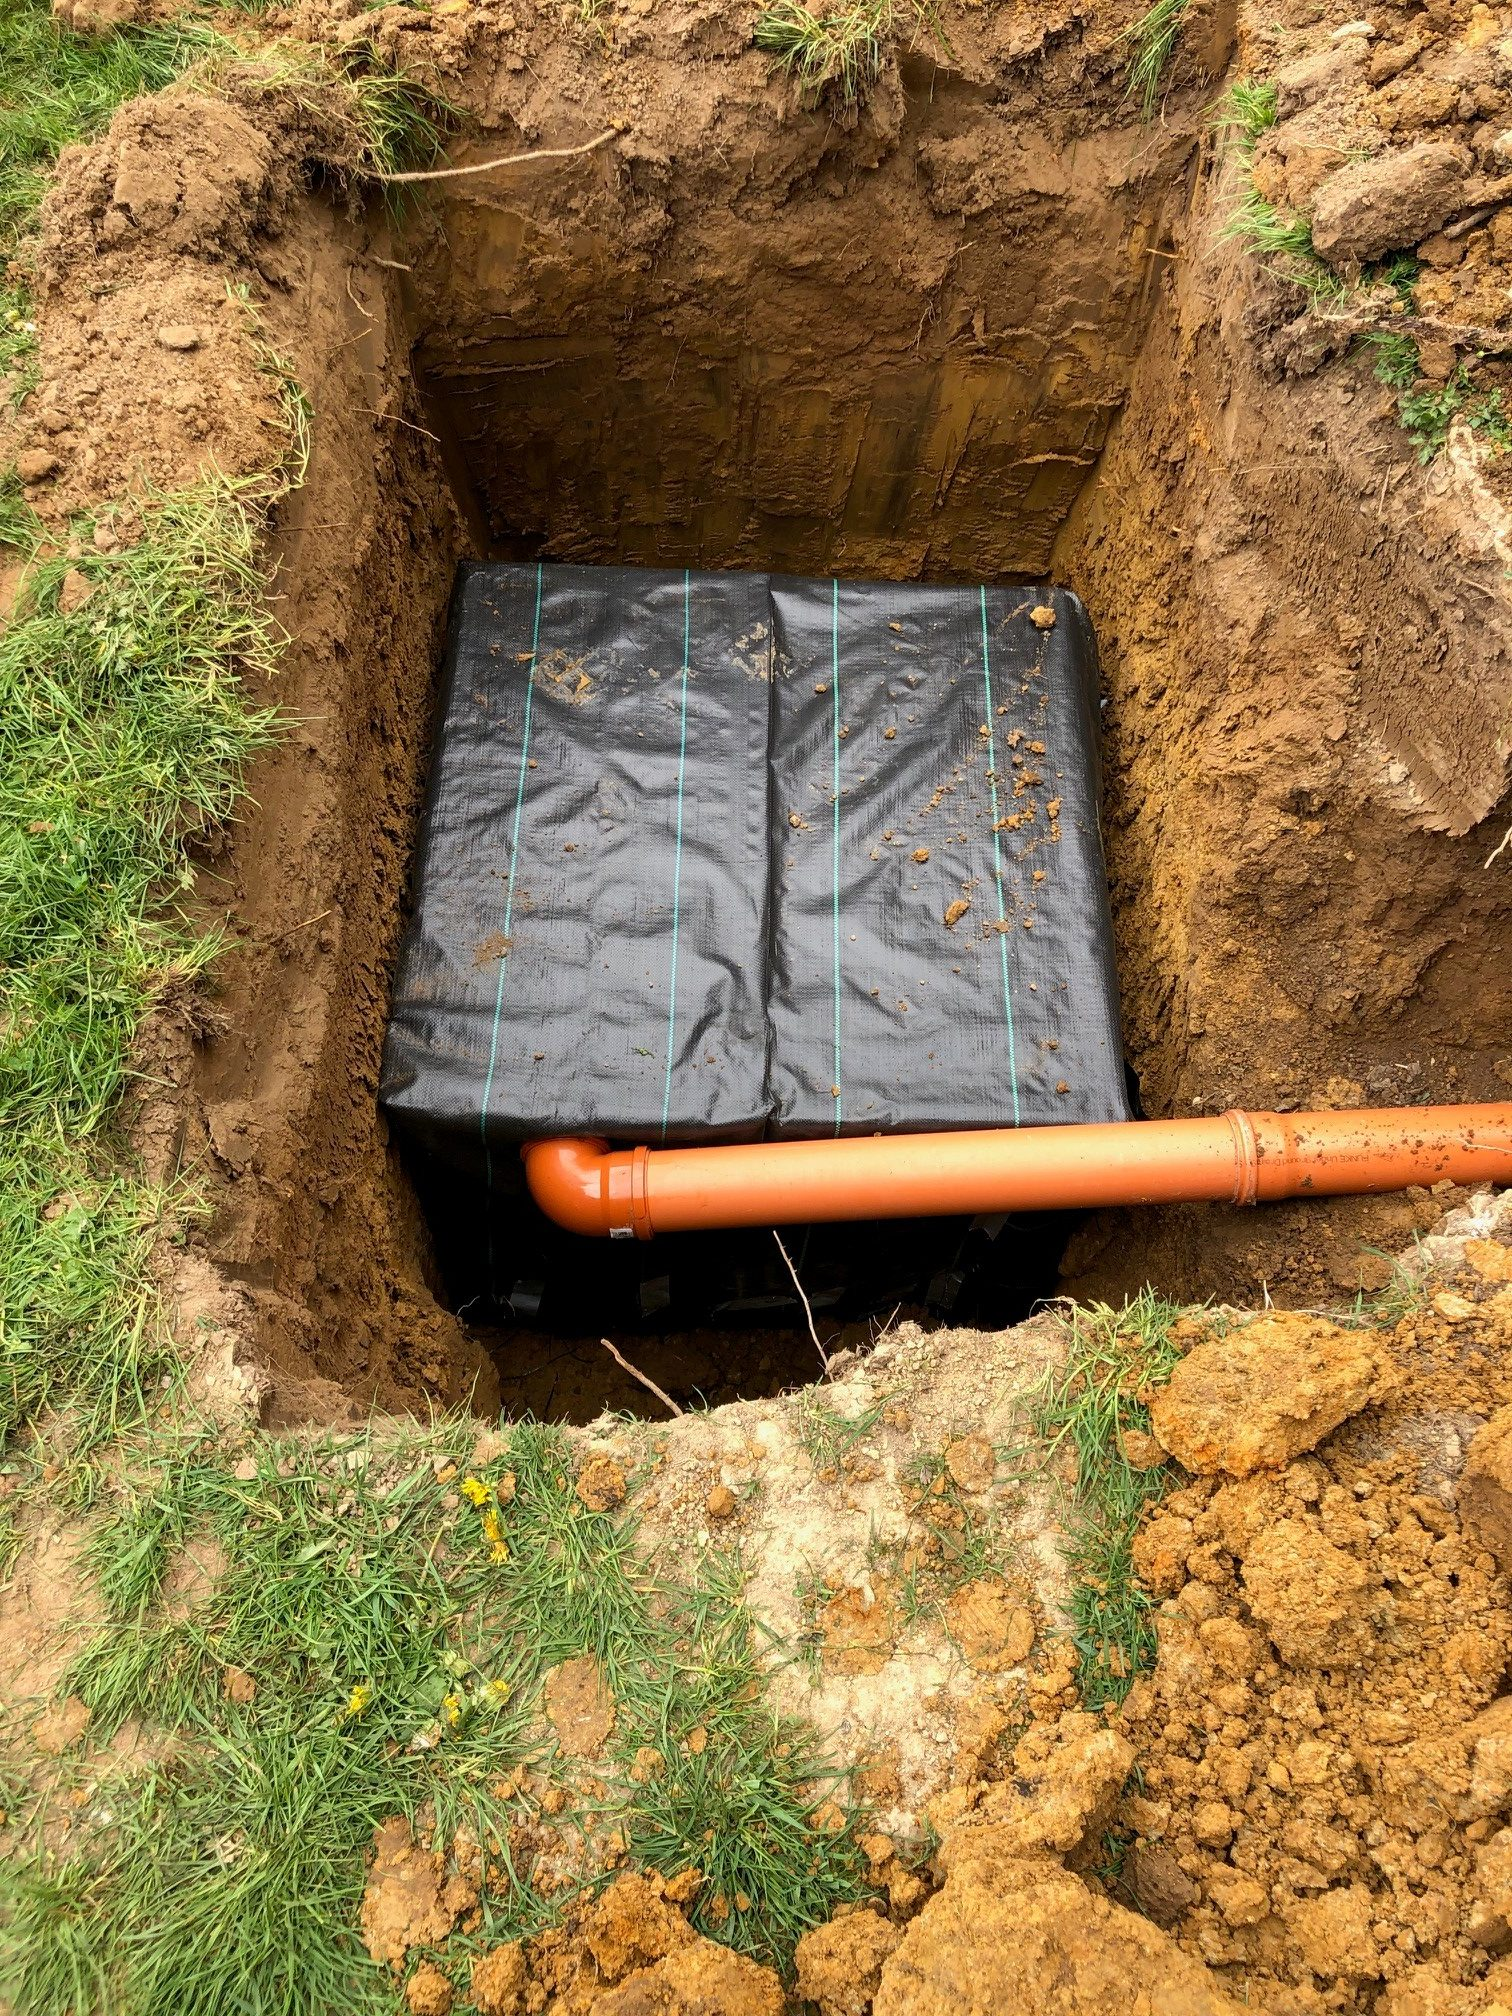 Septic Tank Replacement: Do I Need a Permit or Planning Permission to Replace a Septic Tank?